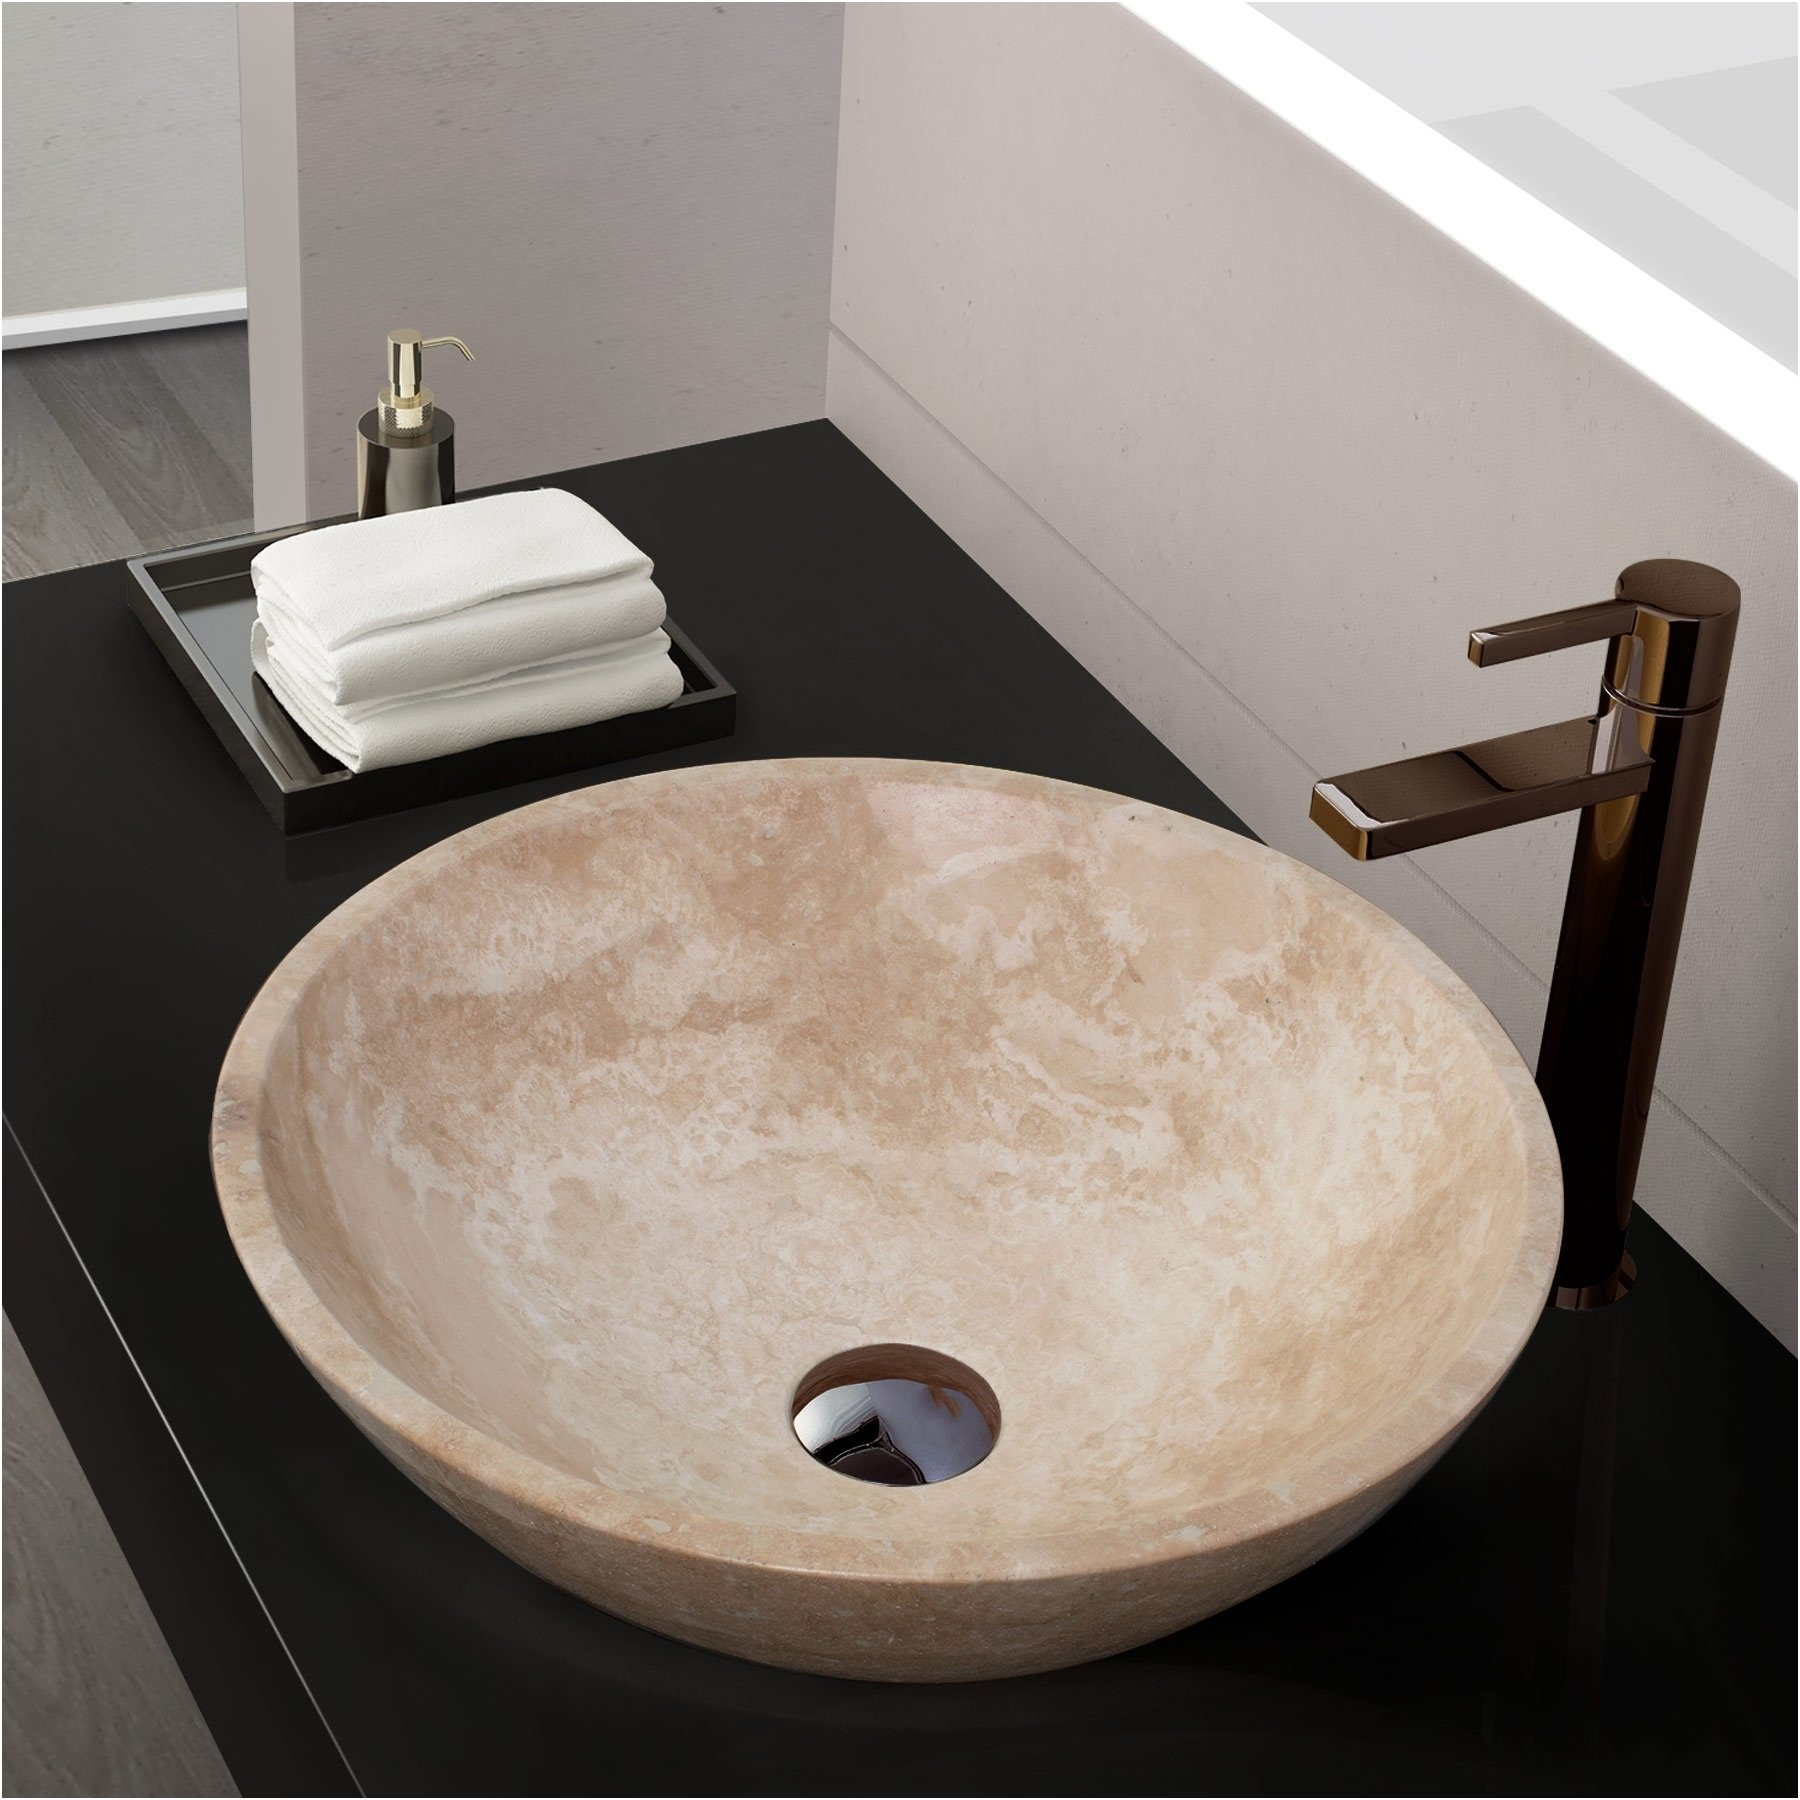 Elegant Stone Bathroom Sinks Clearance